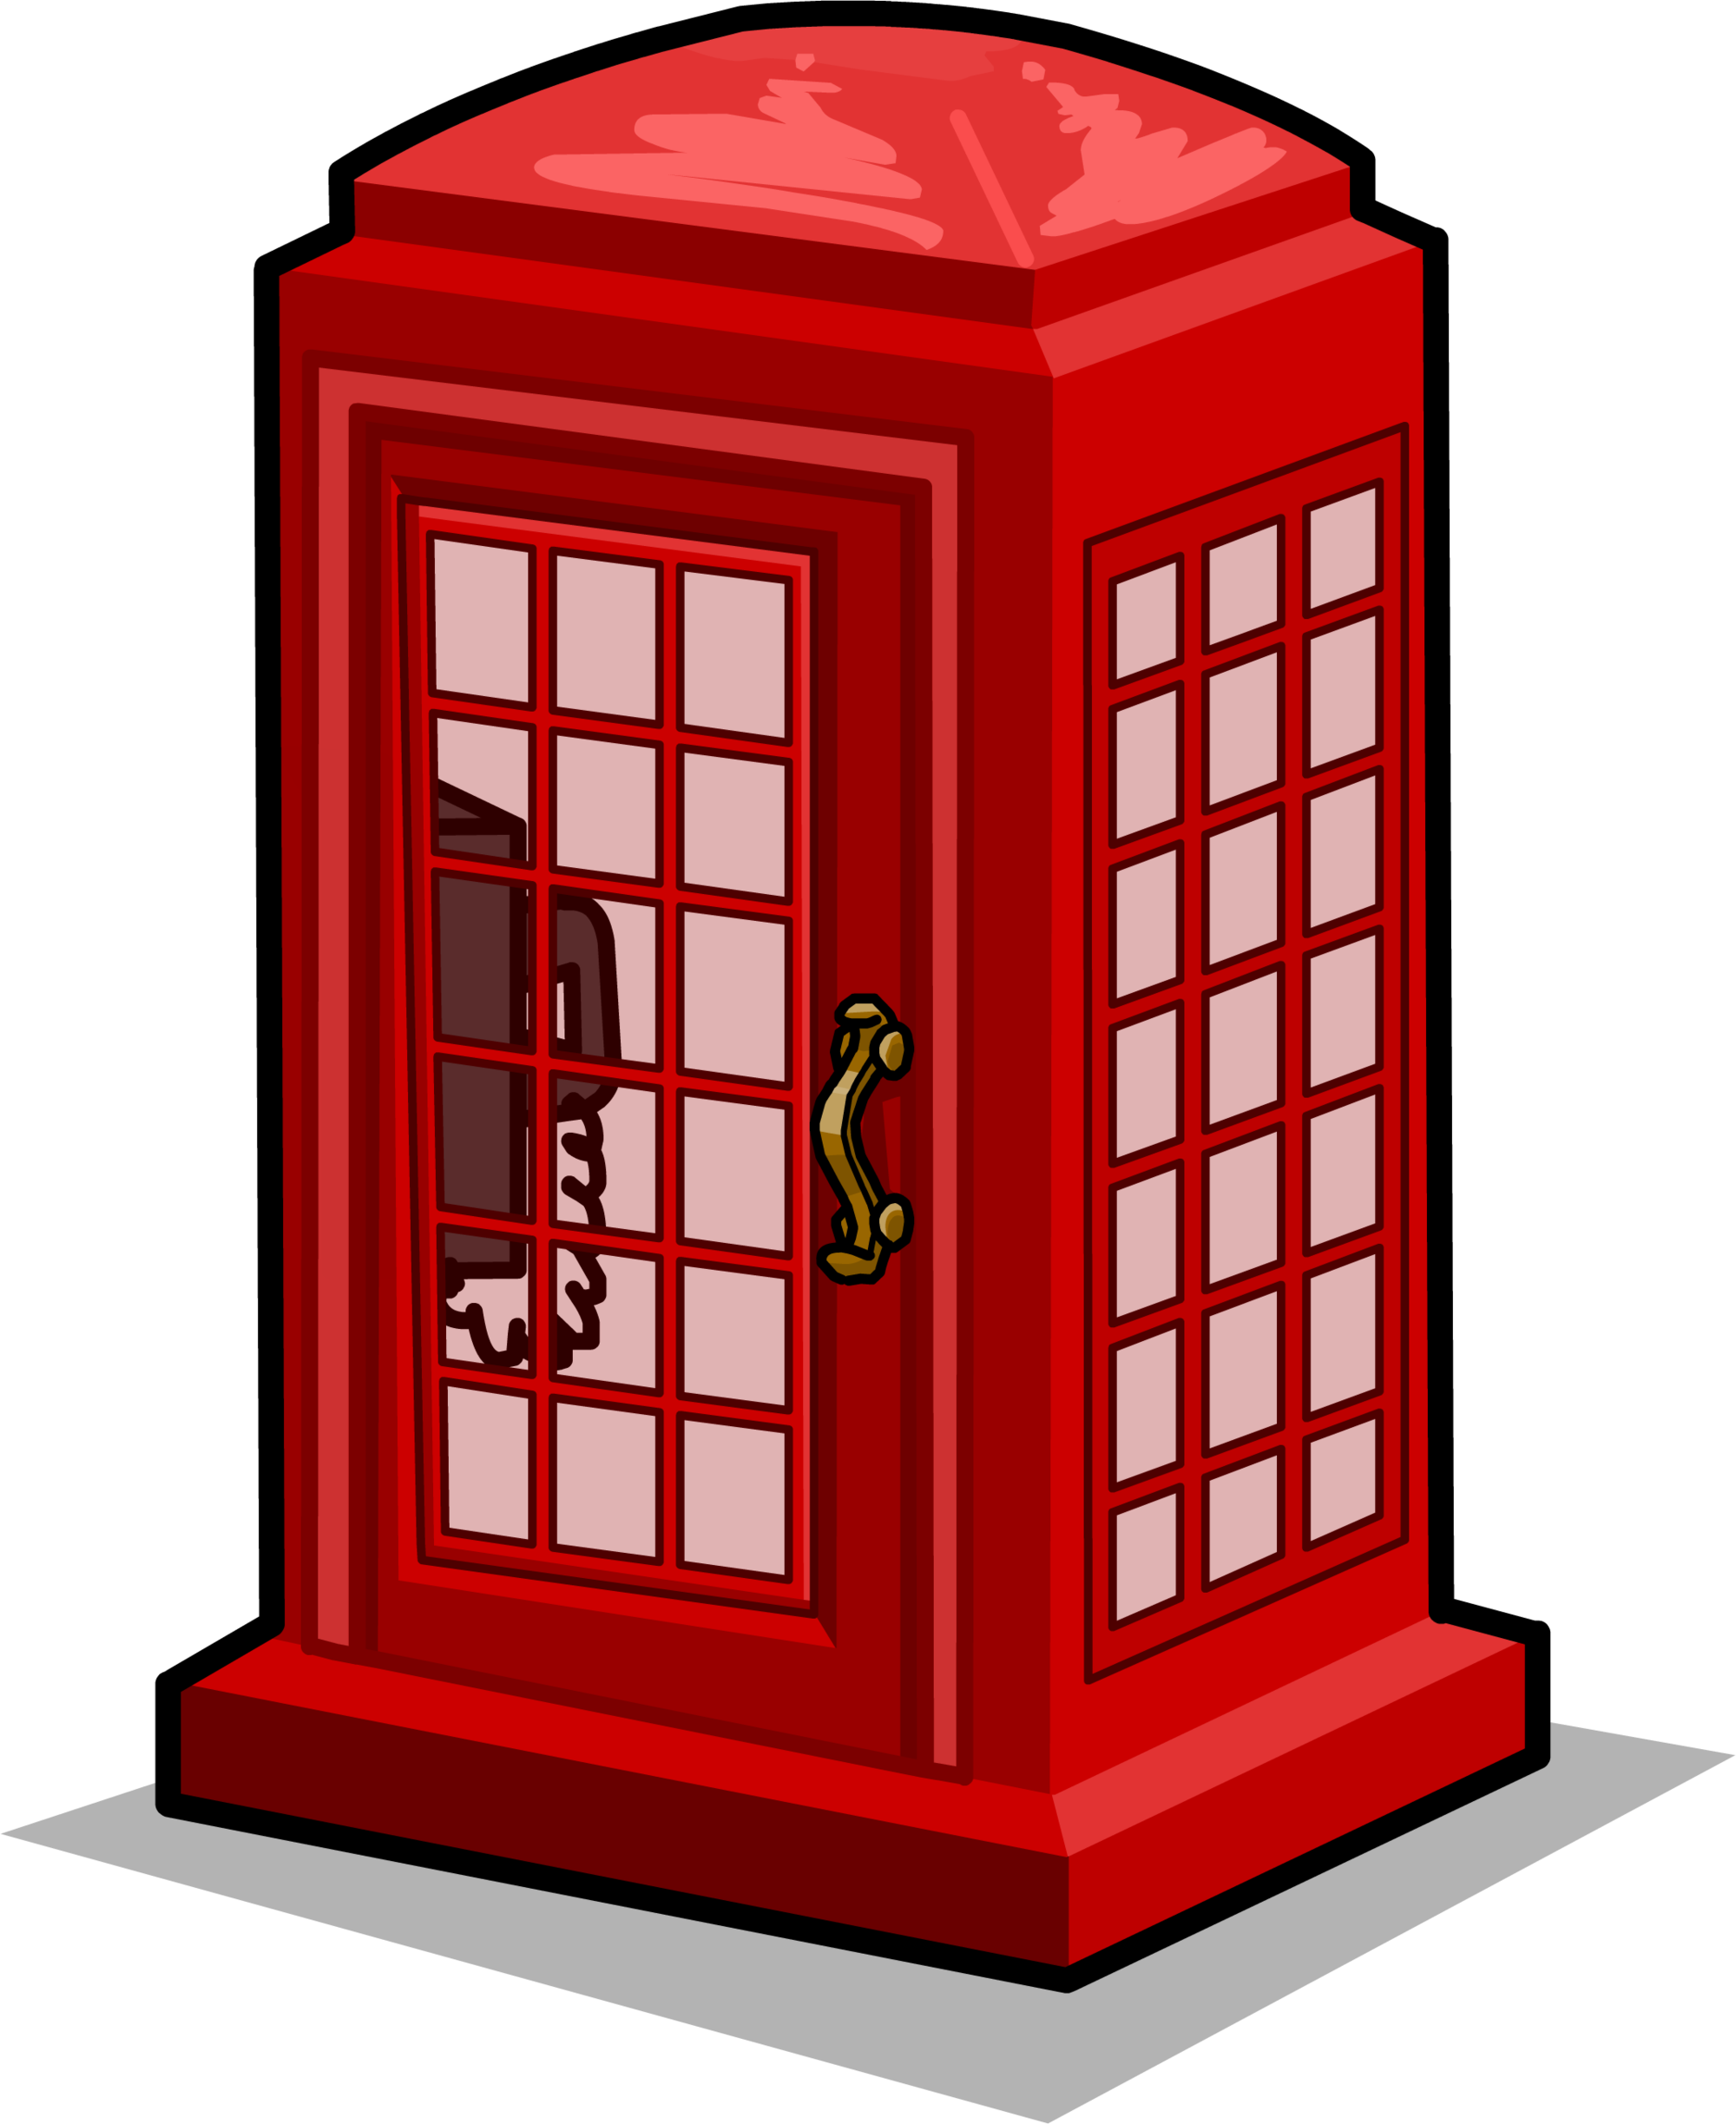 Telephone booth png. Images free download